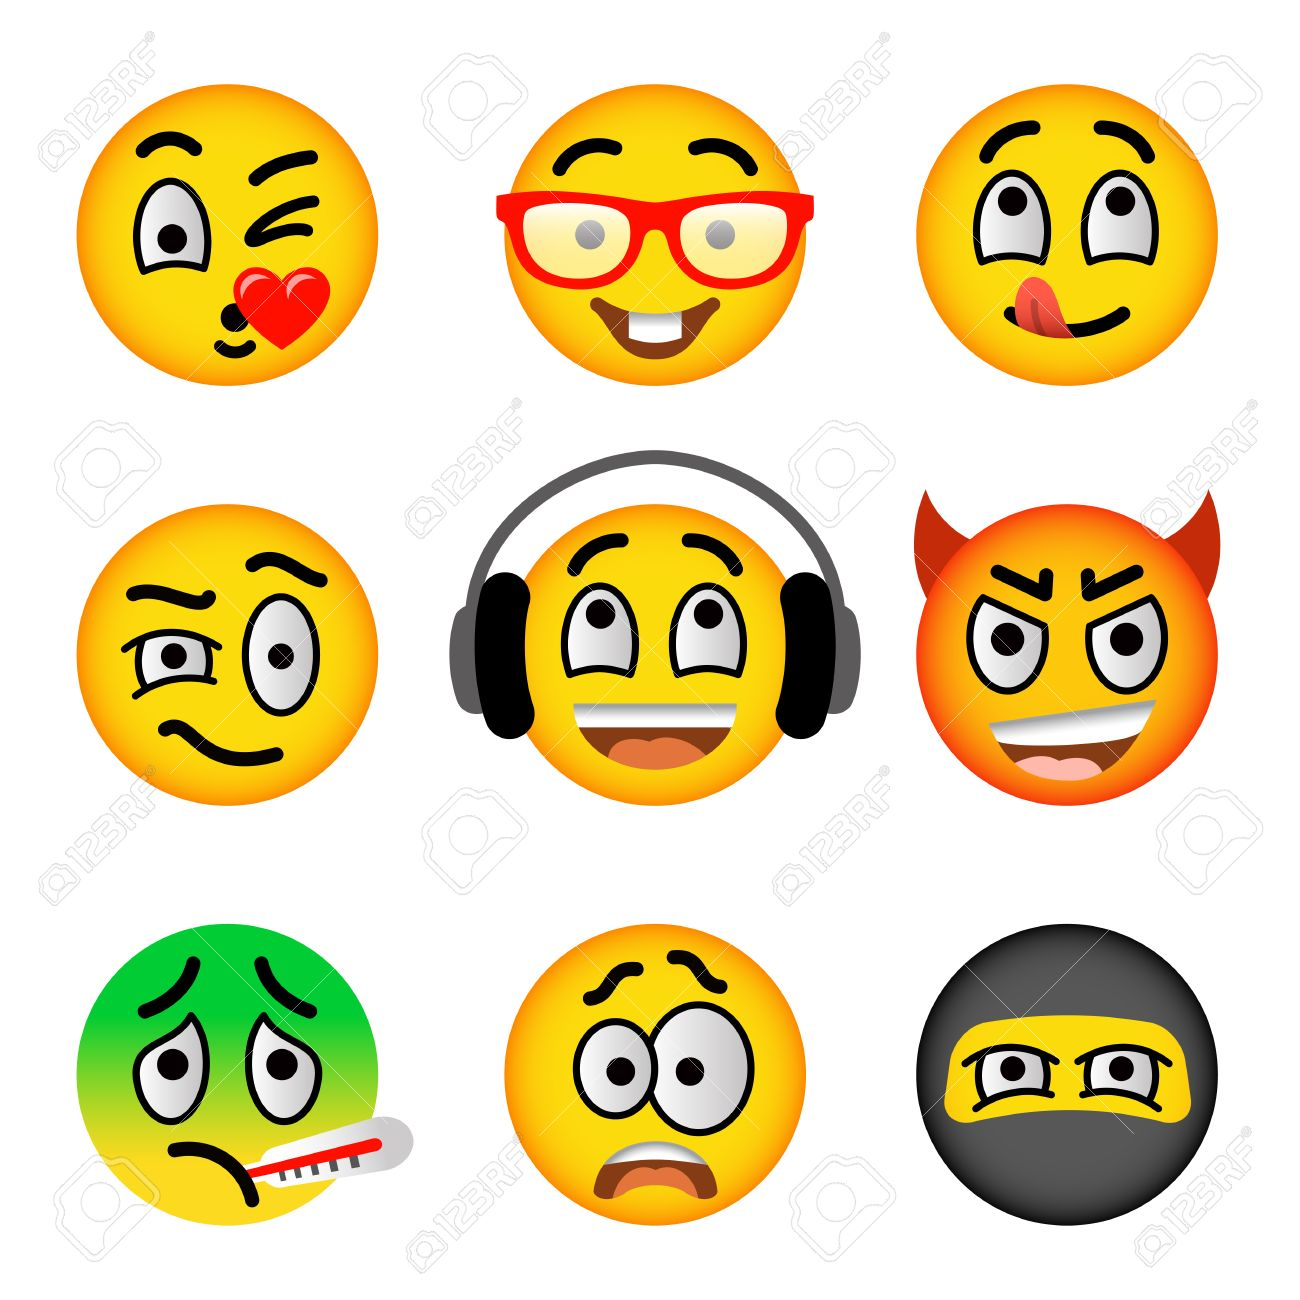 Smiley face flat vector icons set emoji emoticons facial smiley face flat vector icons set emoji emoticons facial emotions and expression symbols buycottarizona Choice Image